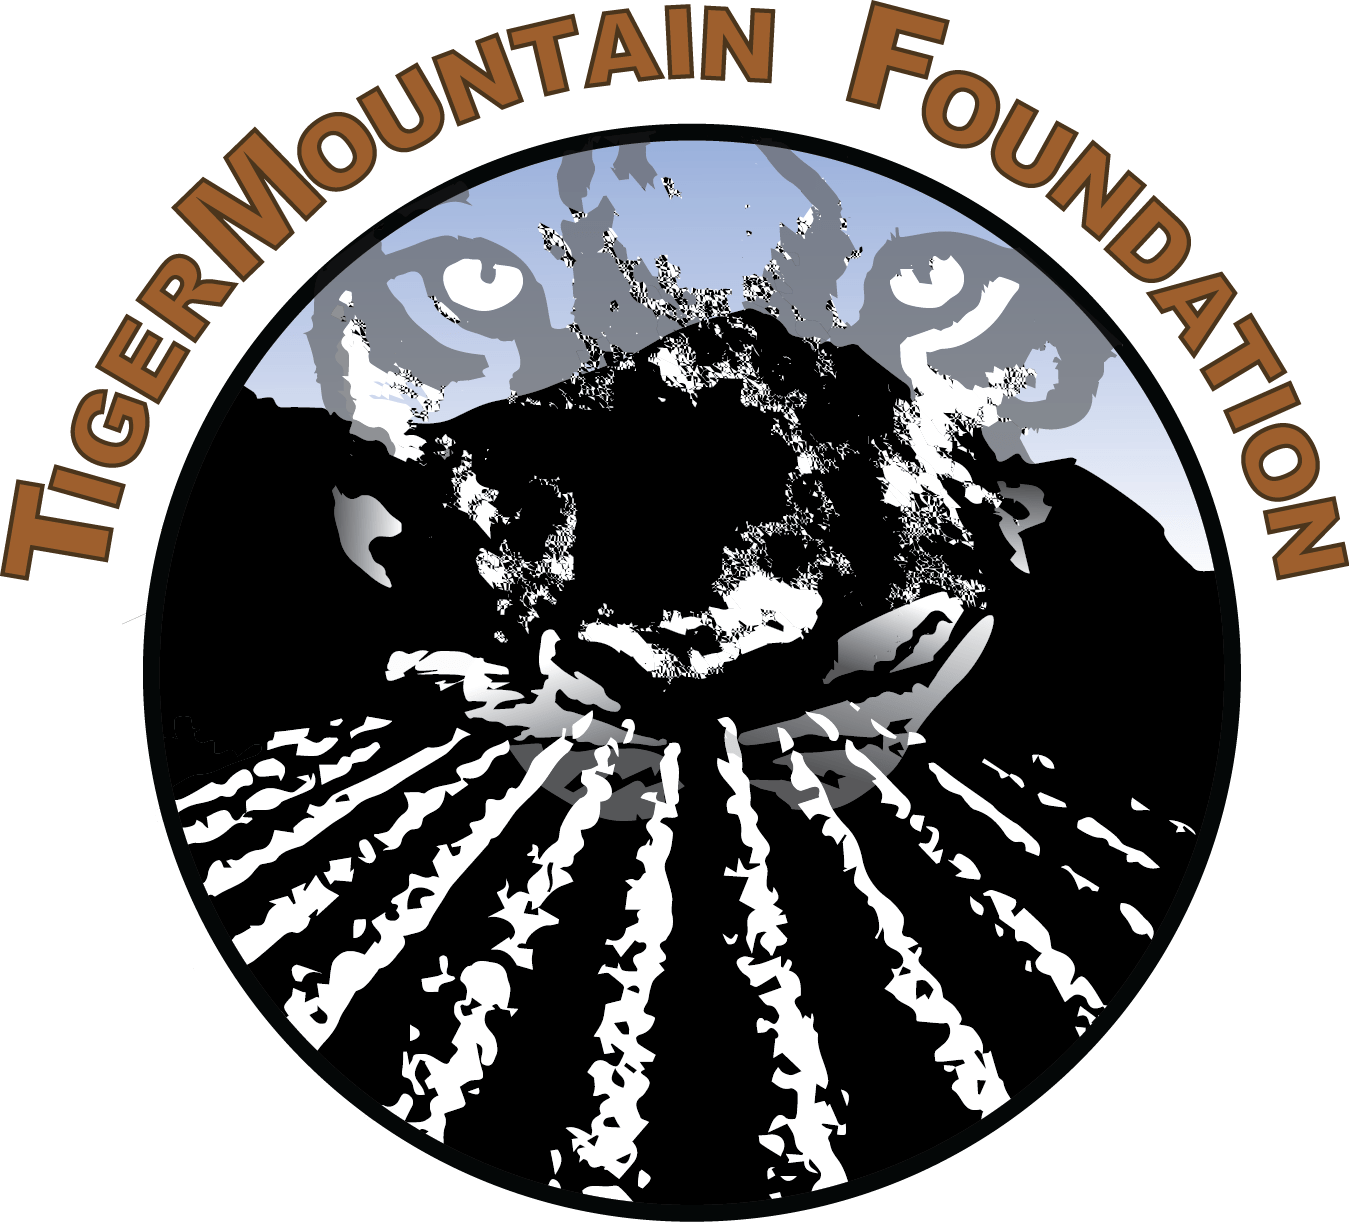 TigerMountain Foundation